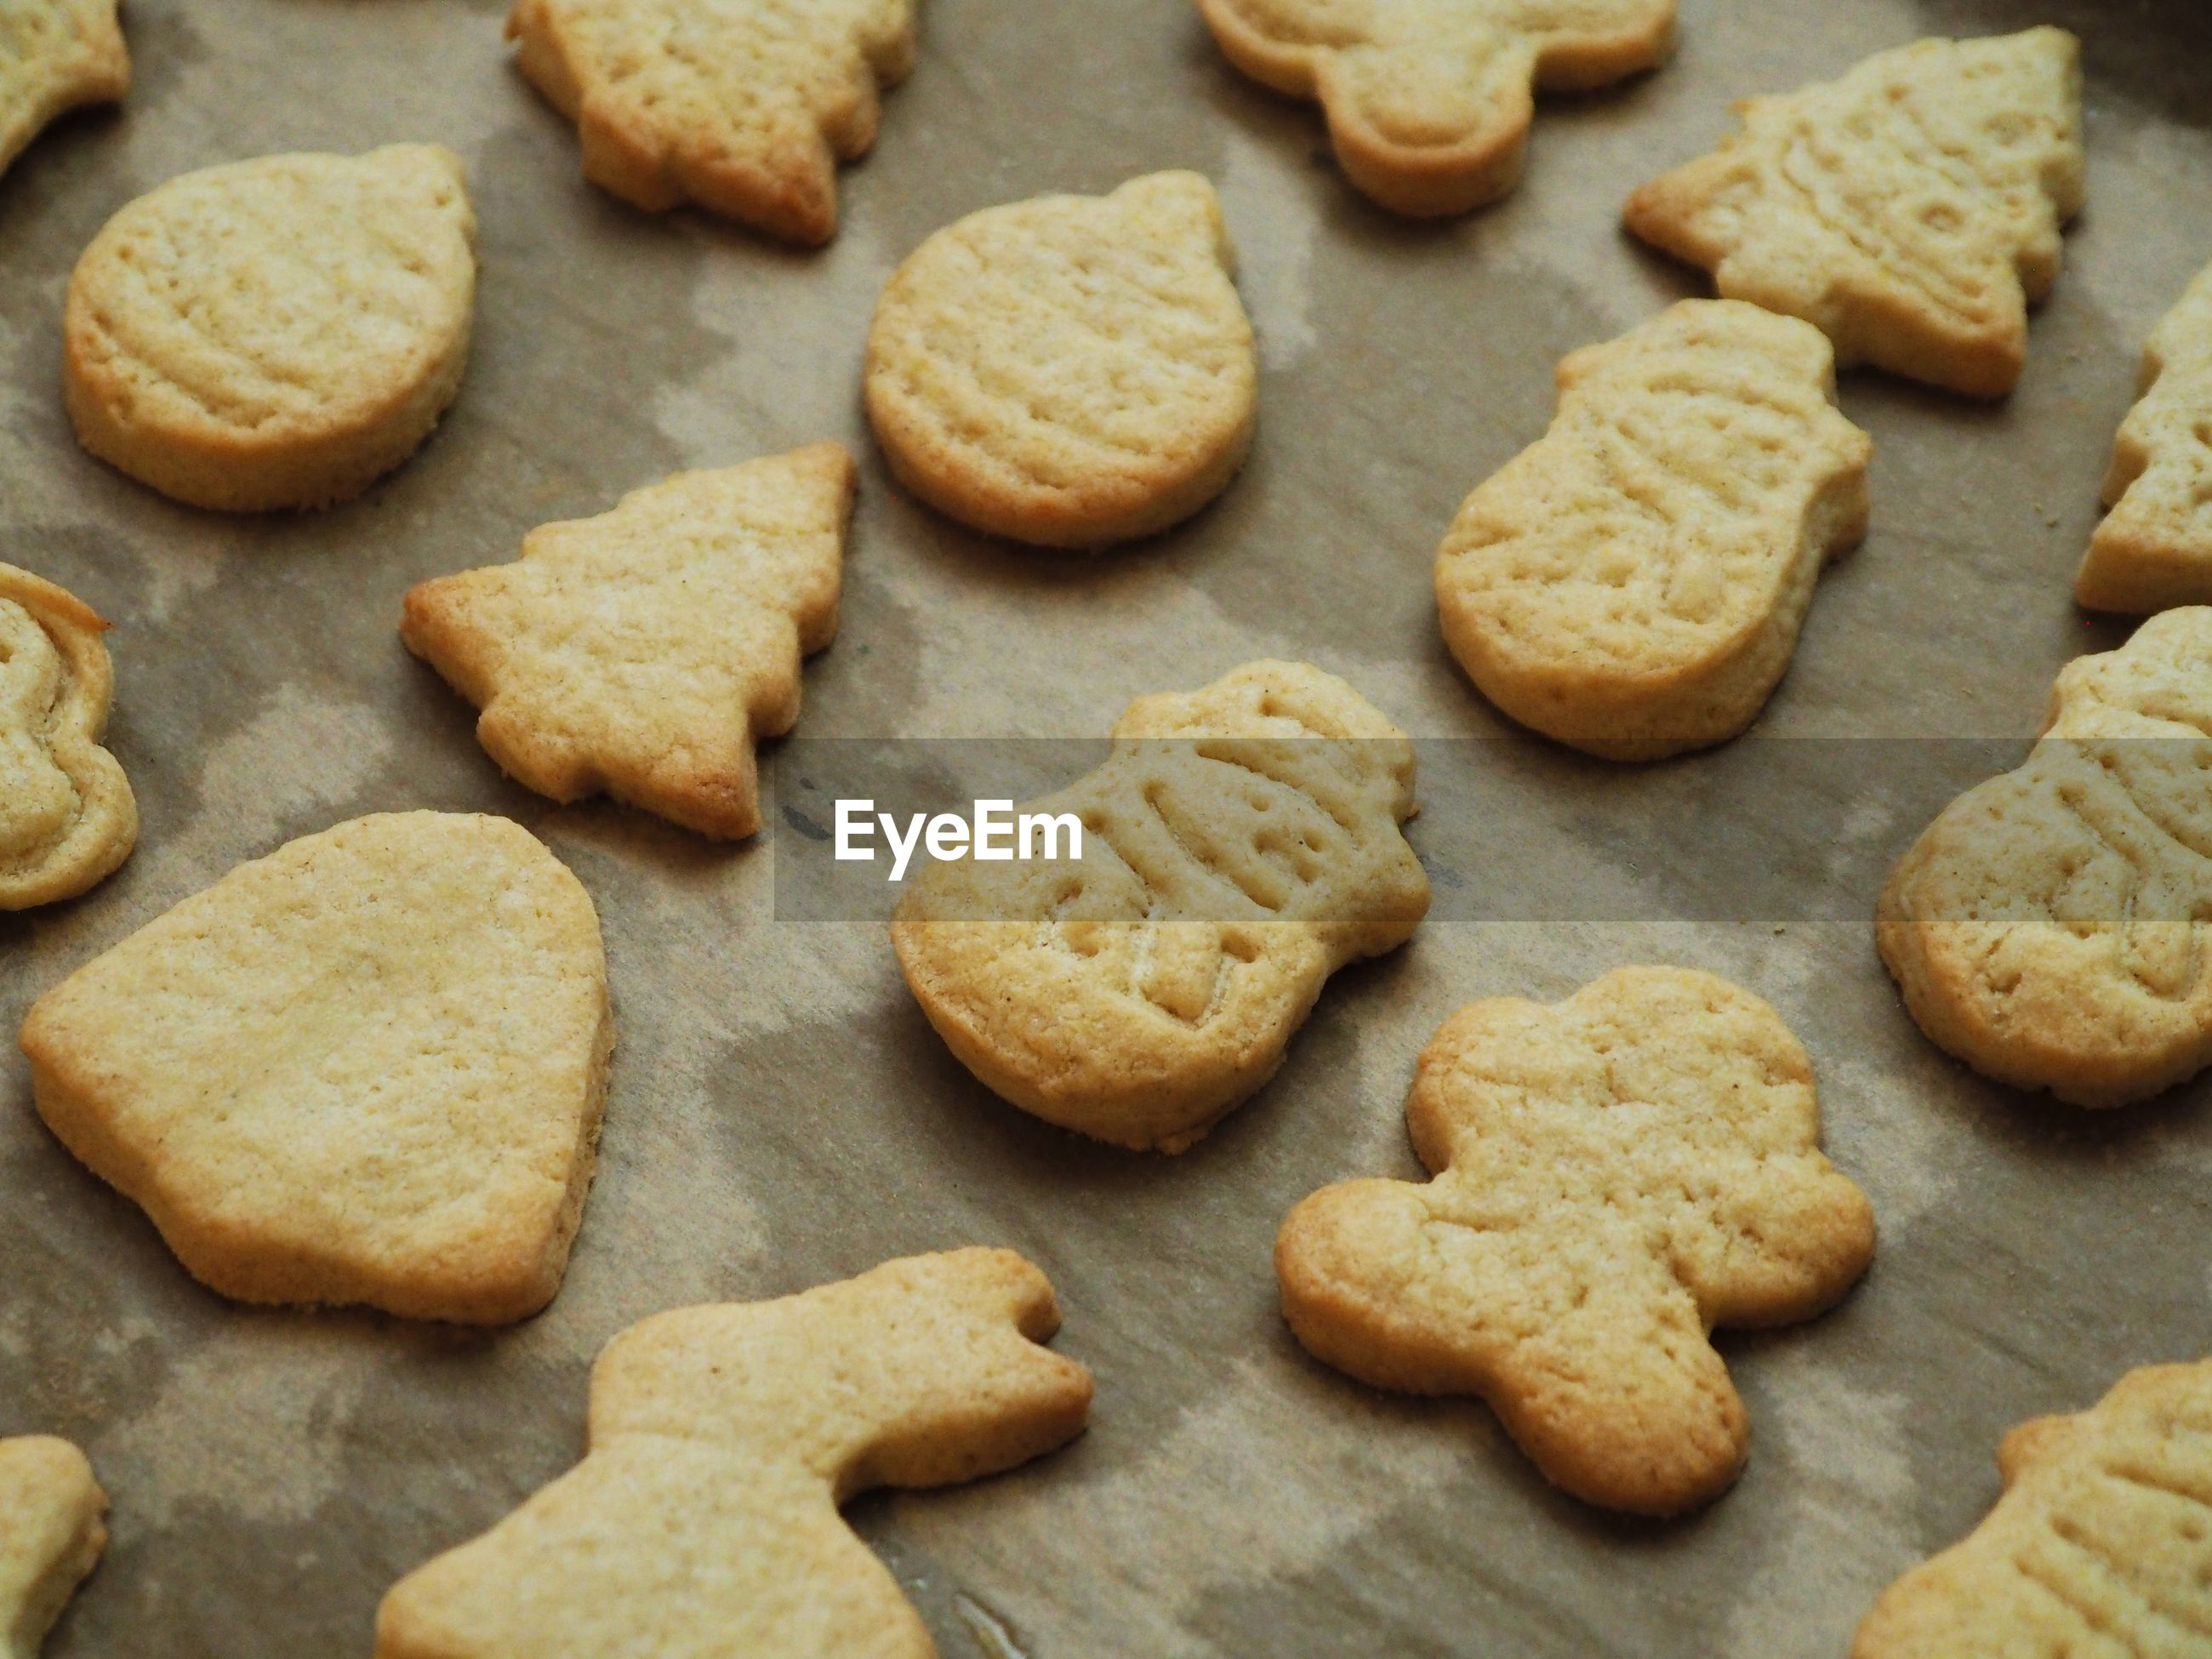 HIGH ANGLE VIEW OF COOKIES ON PEBBLES